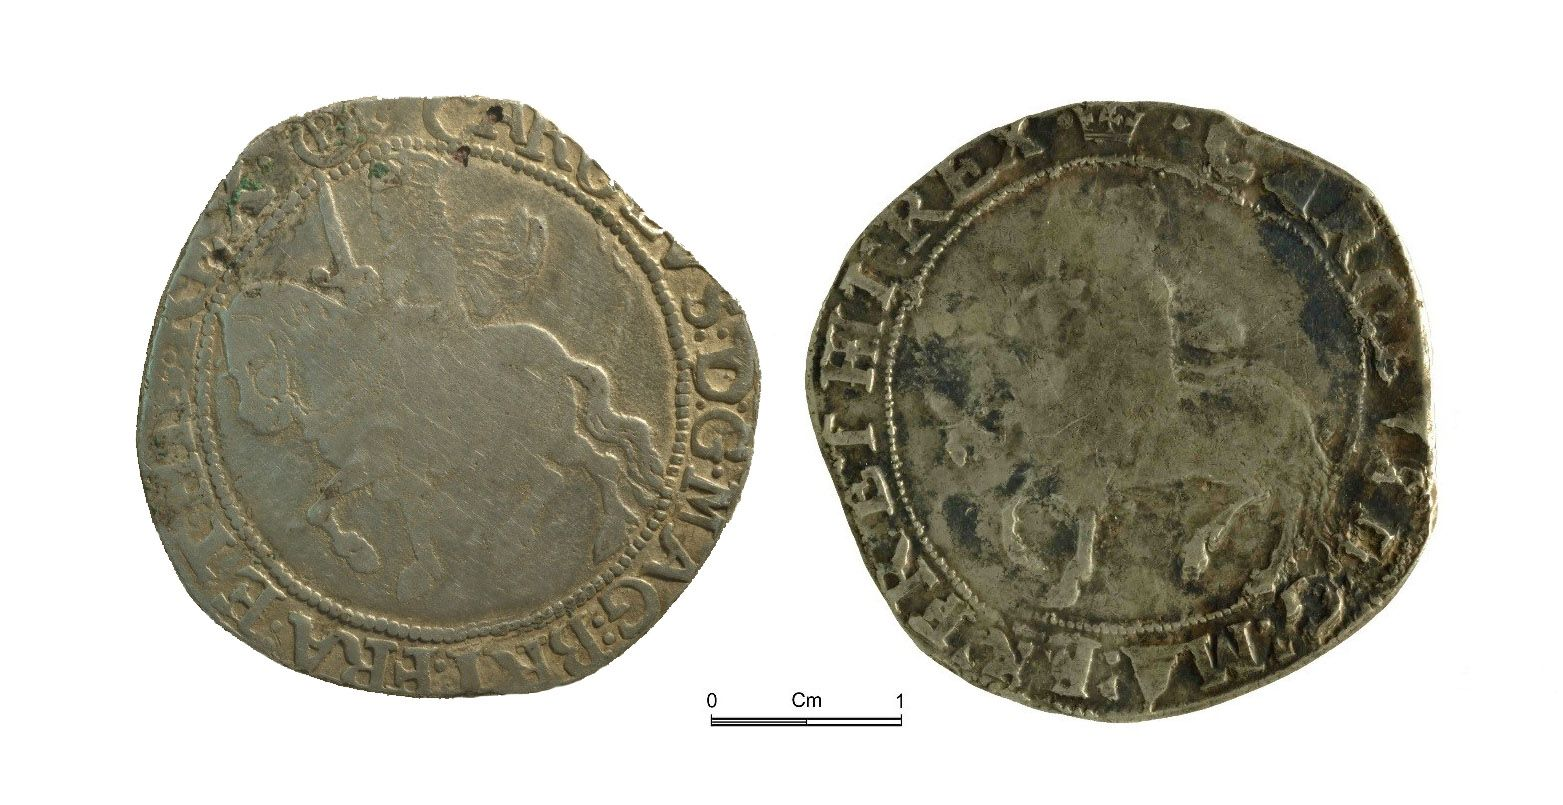 One of these Charles I half-crowns is also a fake. Can you tell which one?